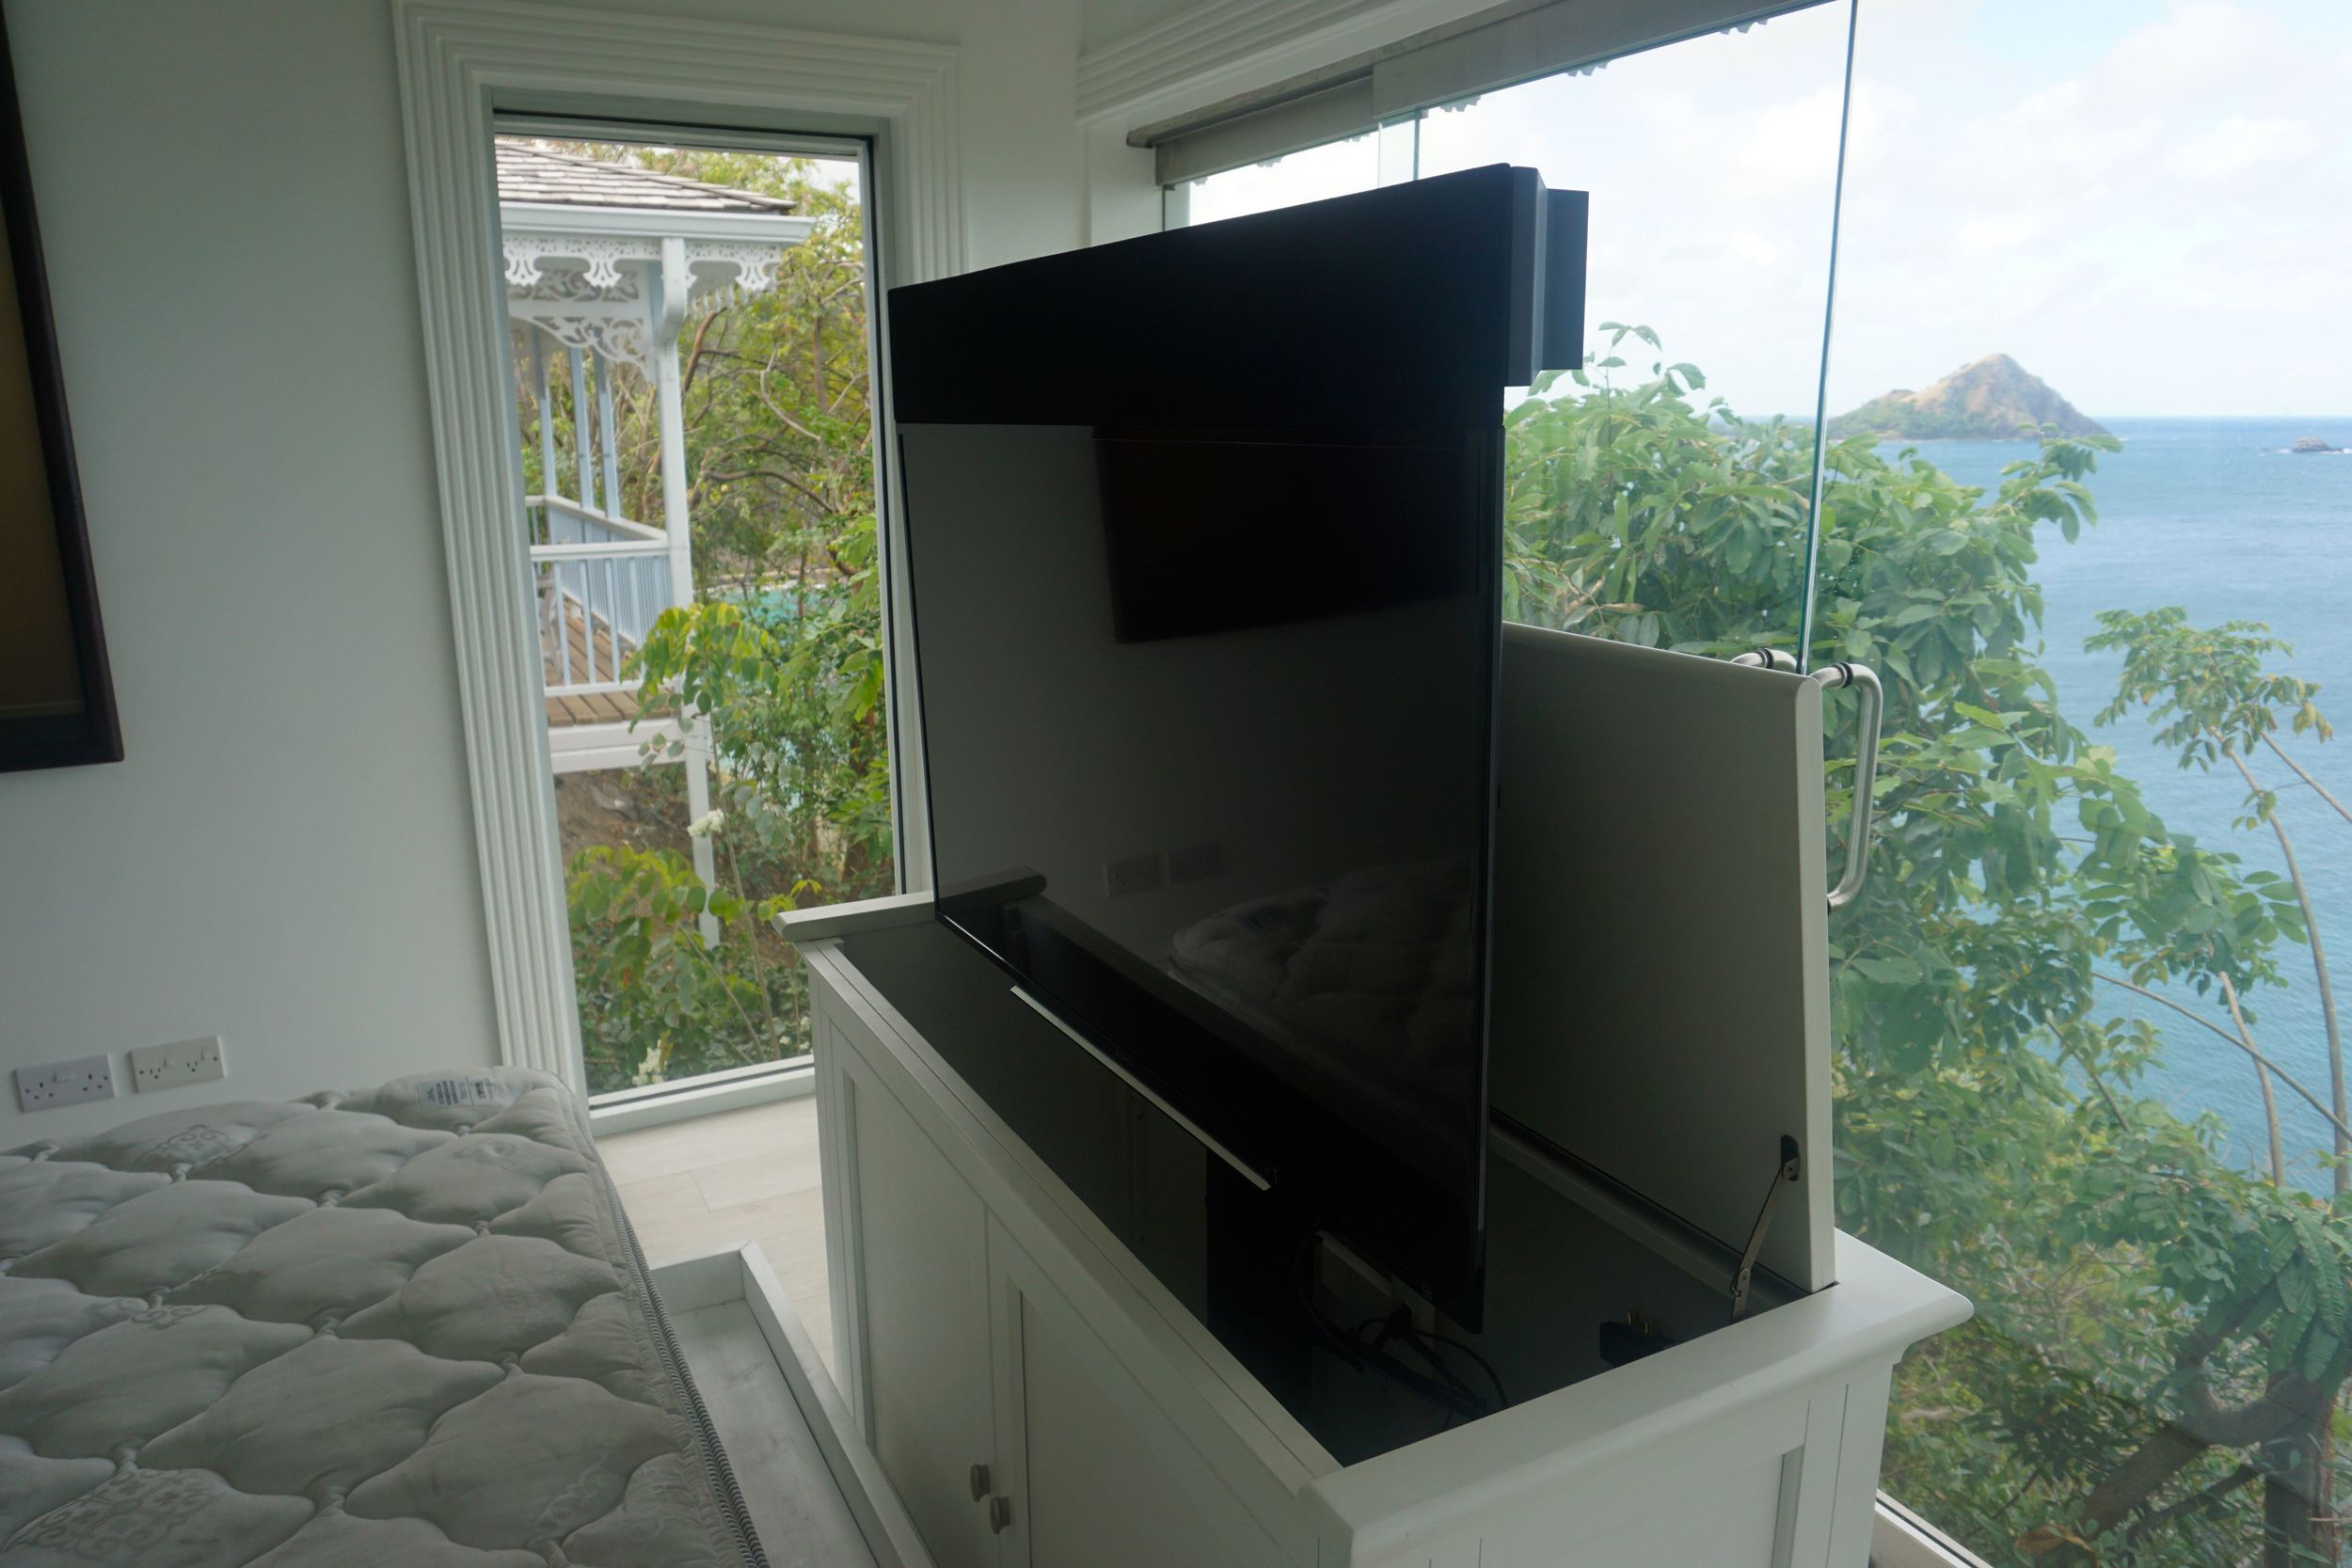 Another TV pops out of a cabinet in the bedroom.